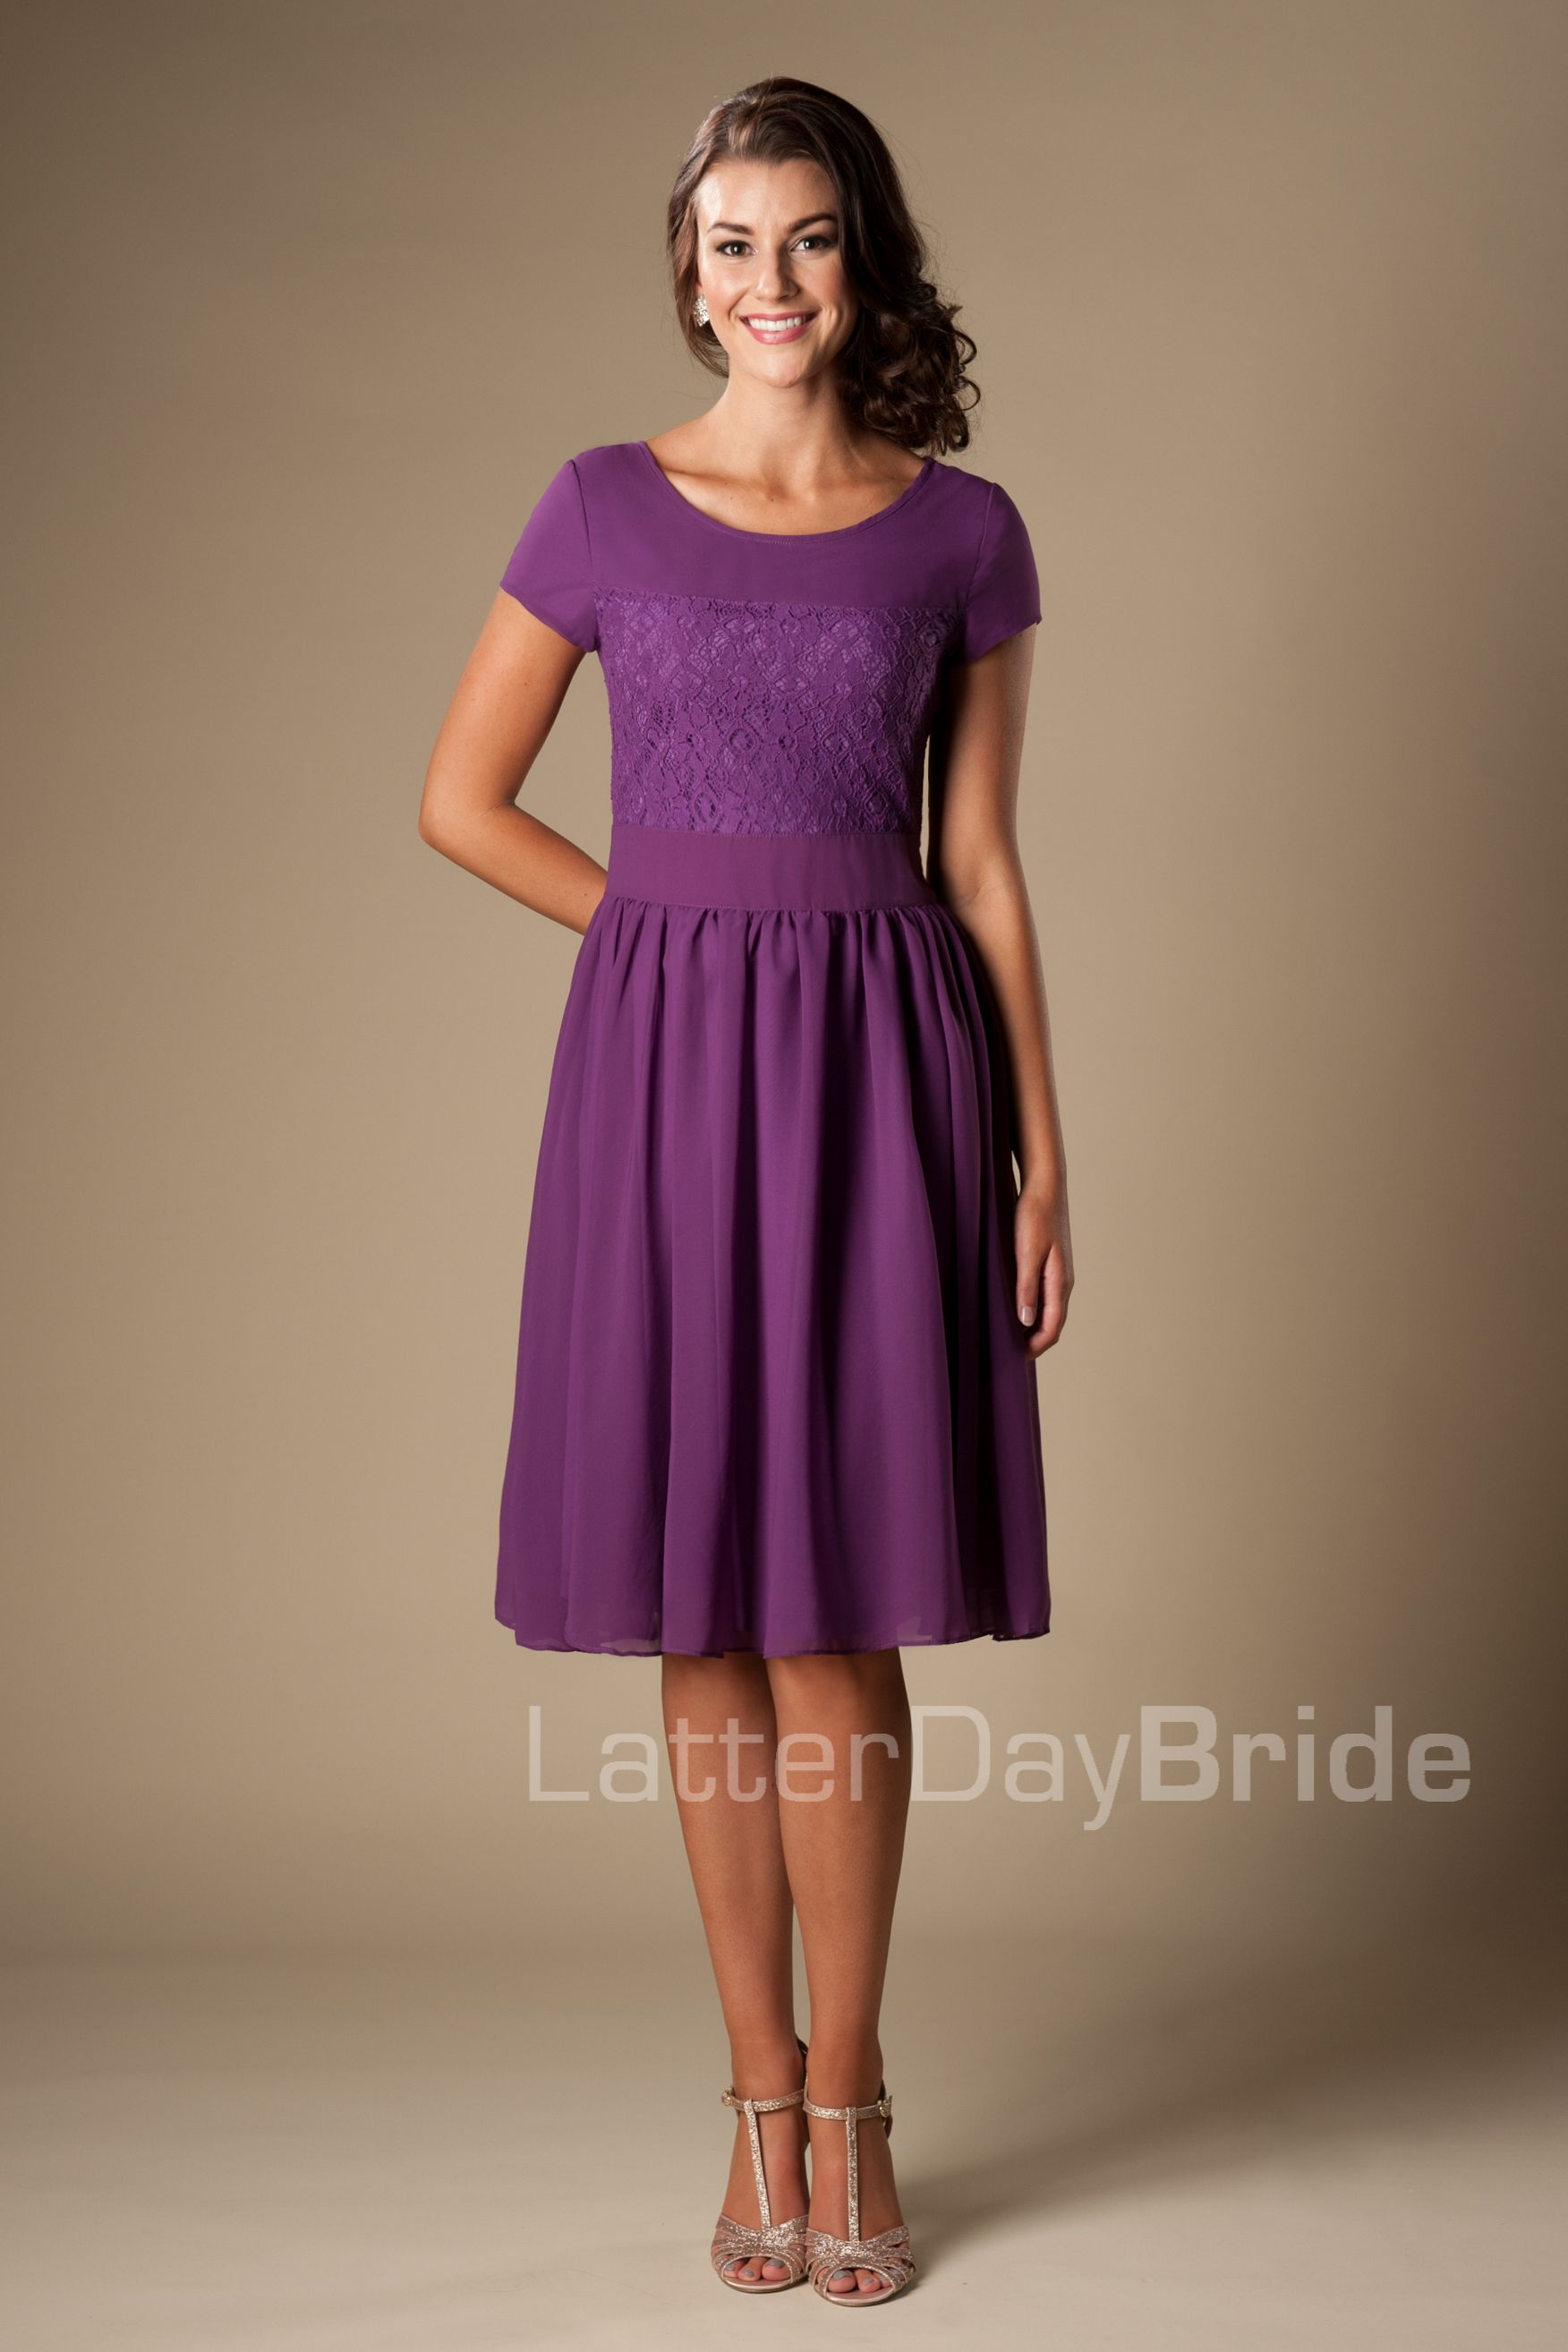 Modest bridesmaid dress mds 001 purpleg modest dresses modest bridesmaid dress mds 001 purpleg ombrellifo Image collections